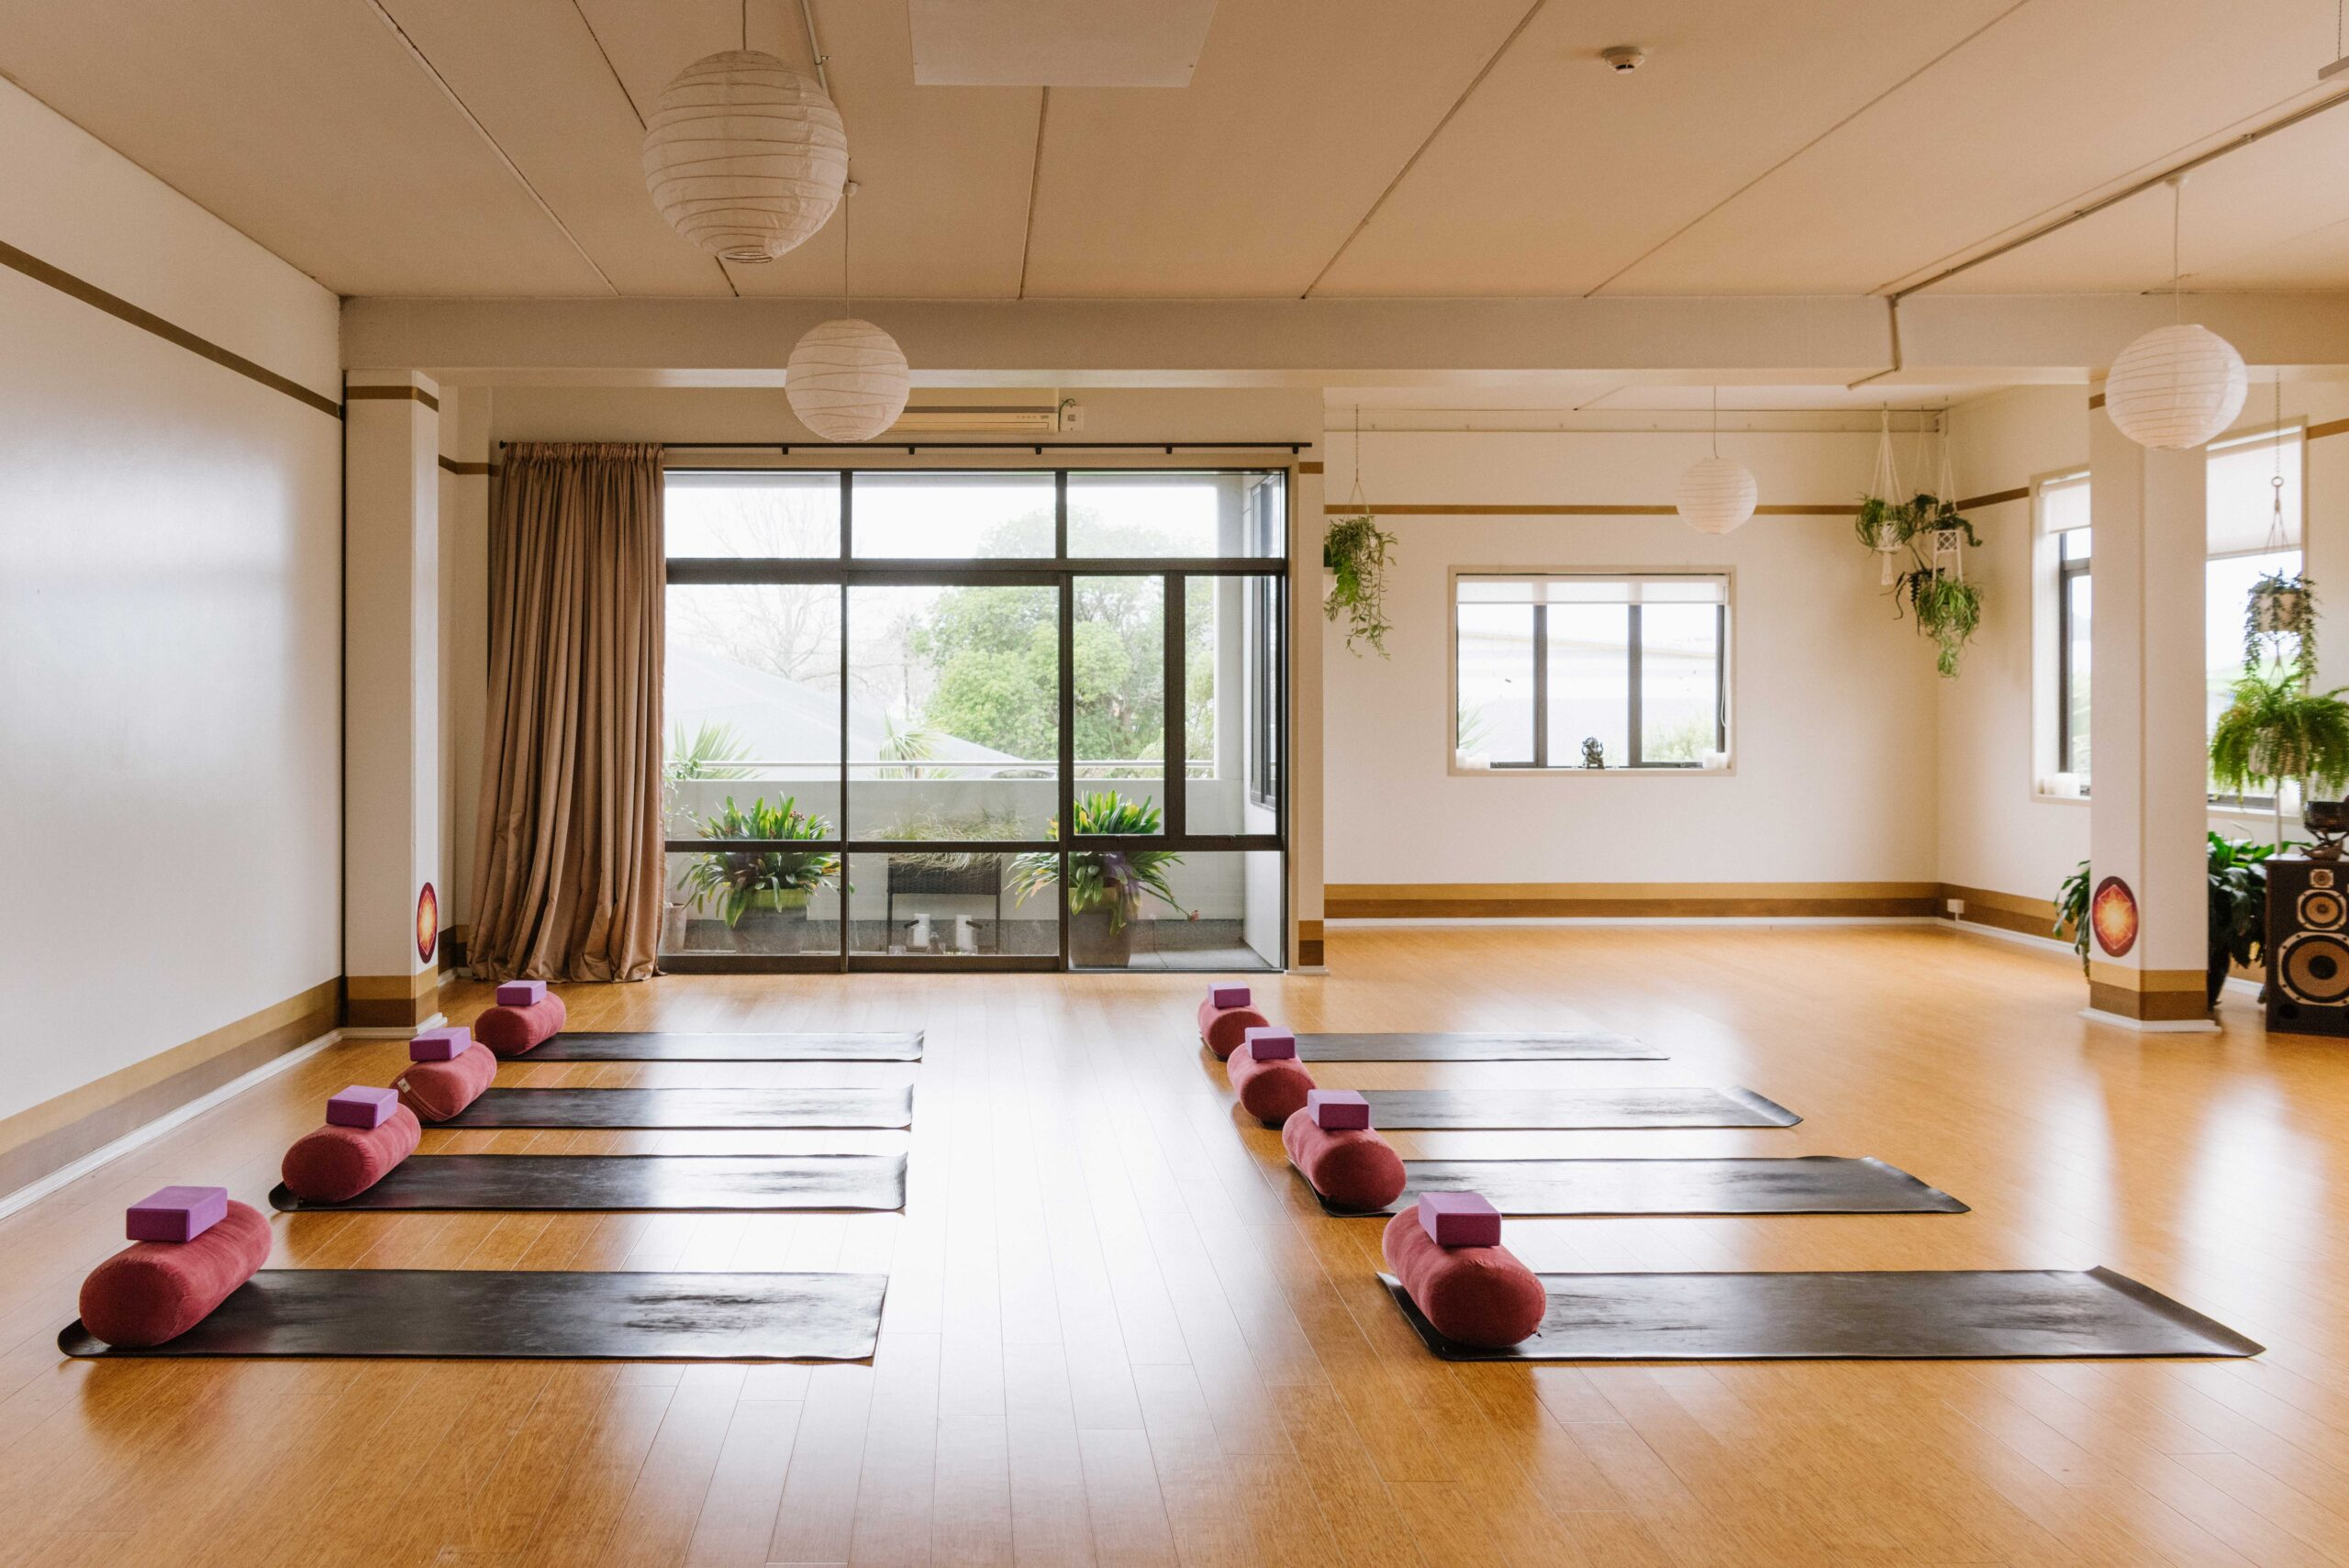 Moving with The Yoga Ground